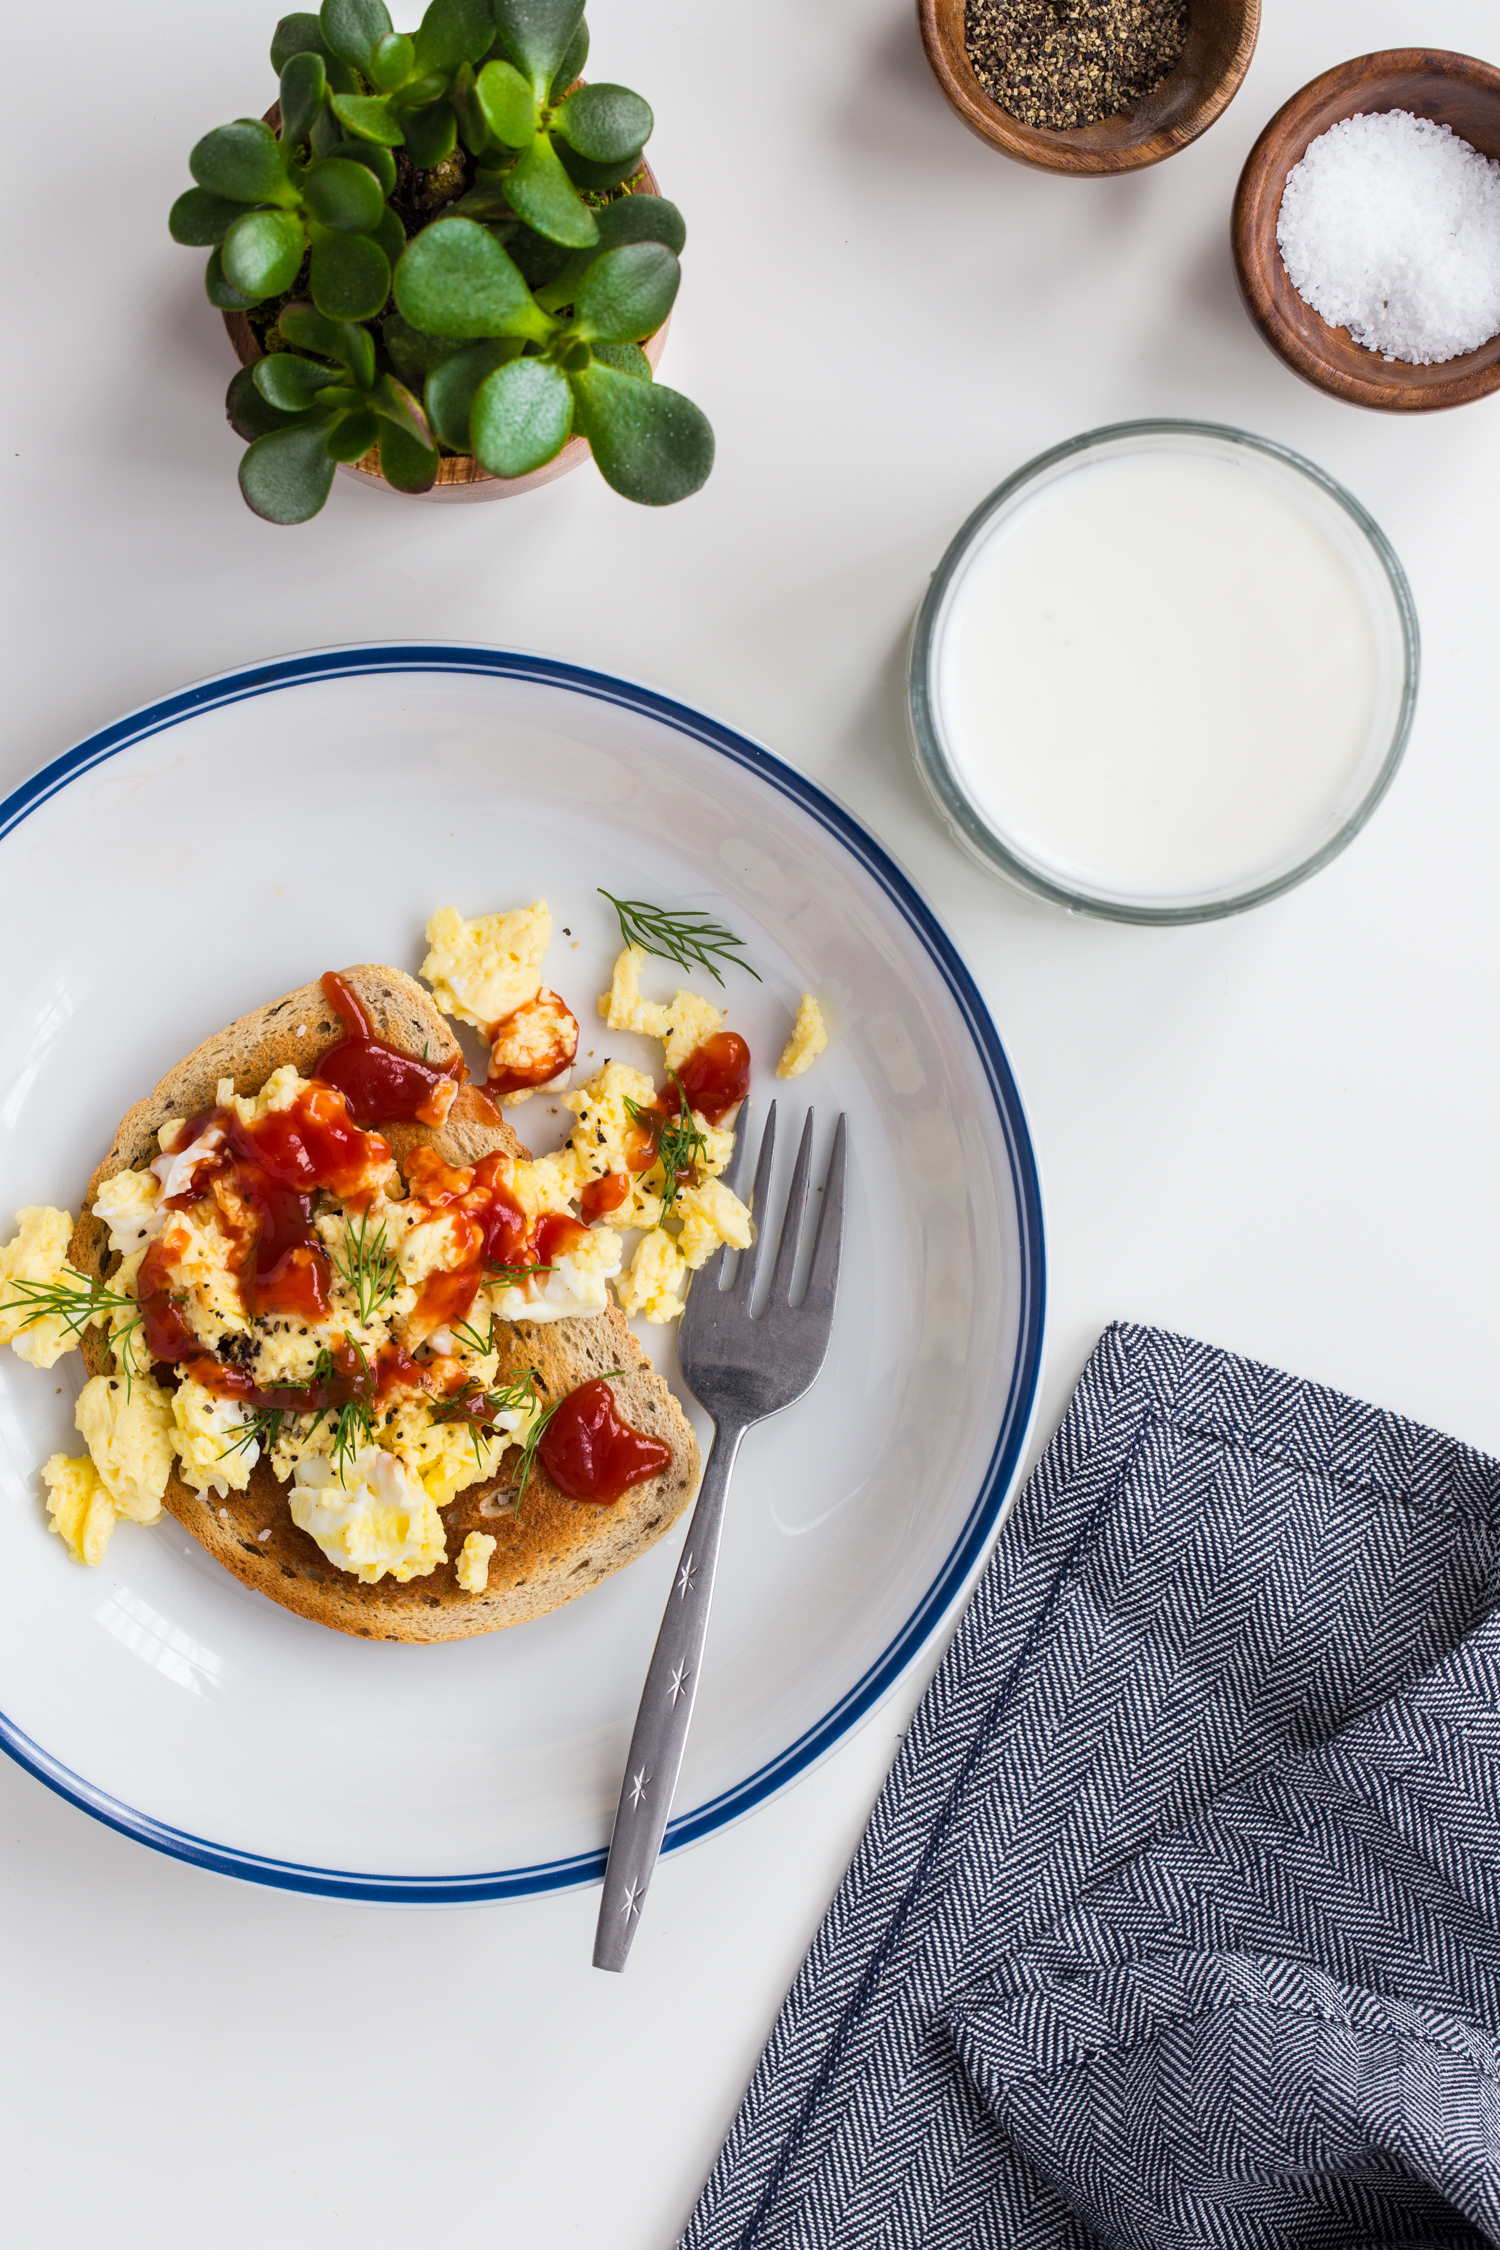 My Weekday Morning Routine #MyMorningProtein - Microwave Scrambled Eggs